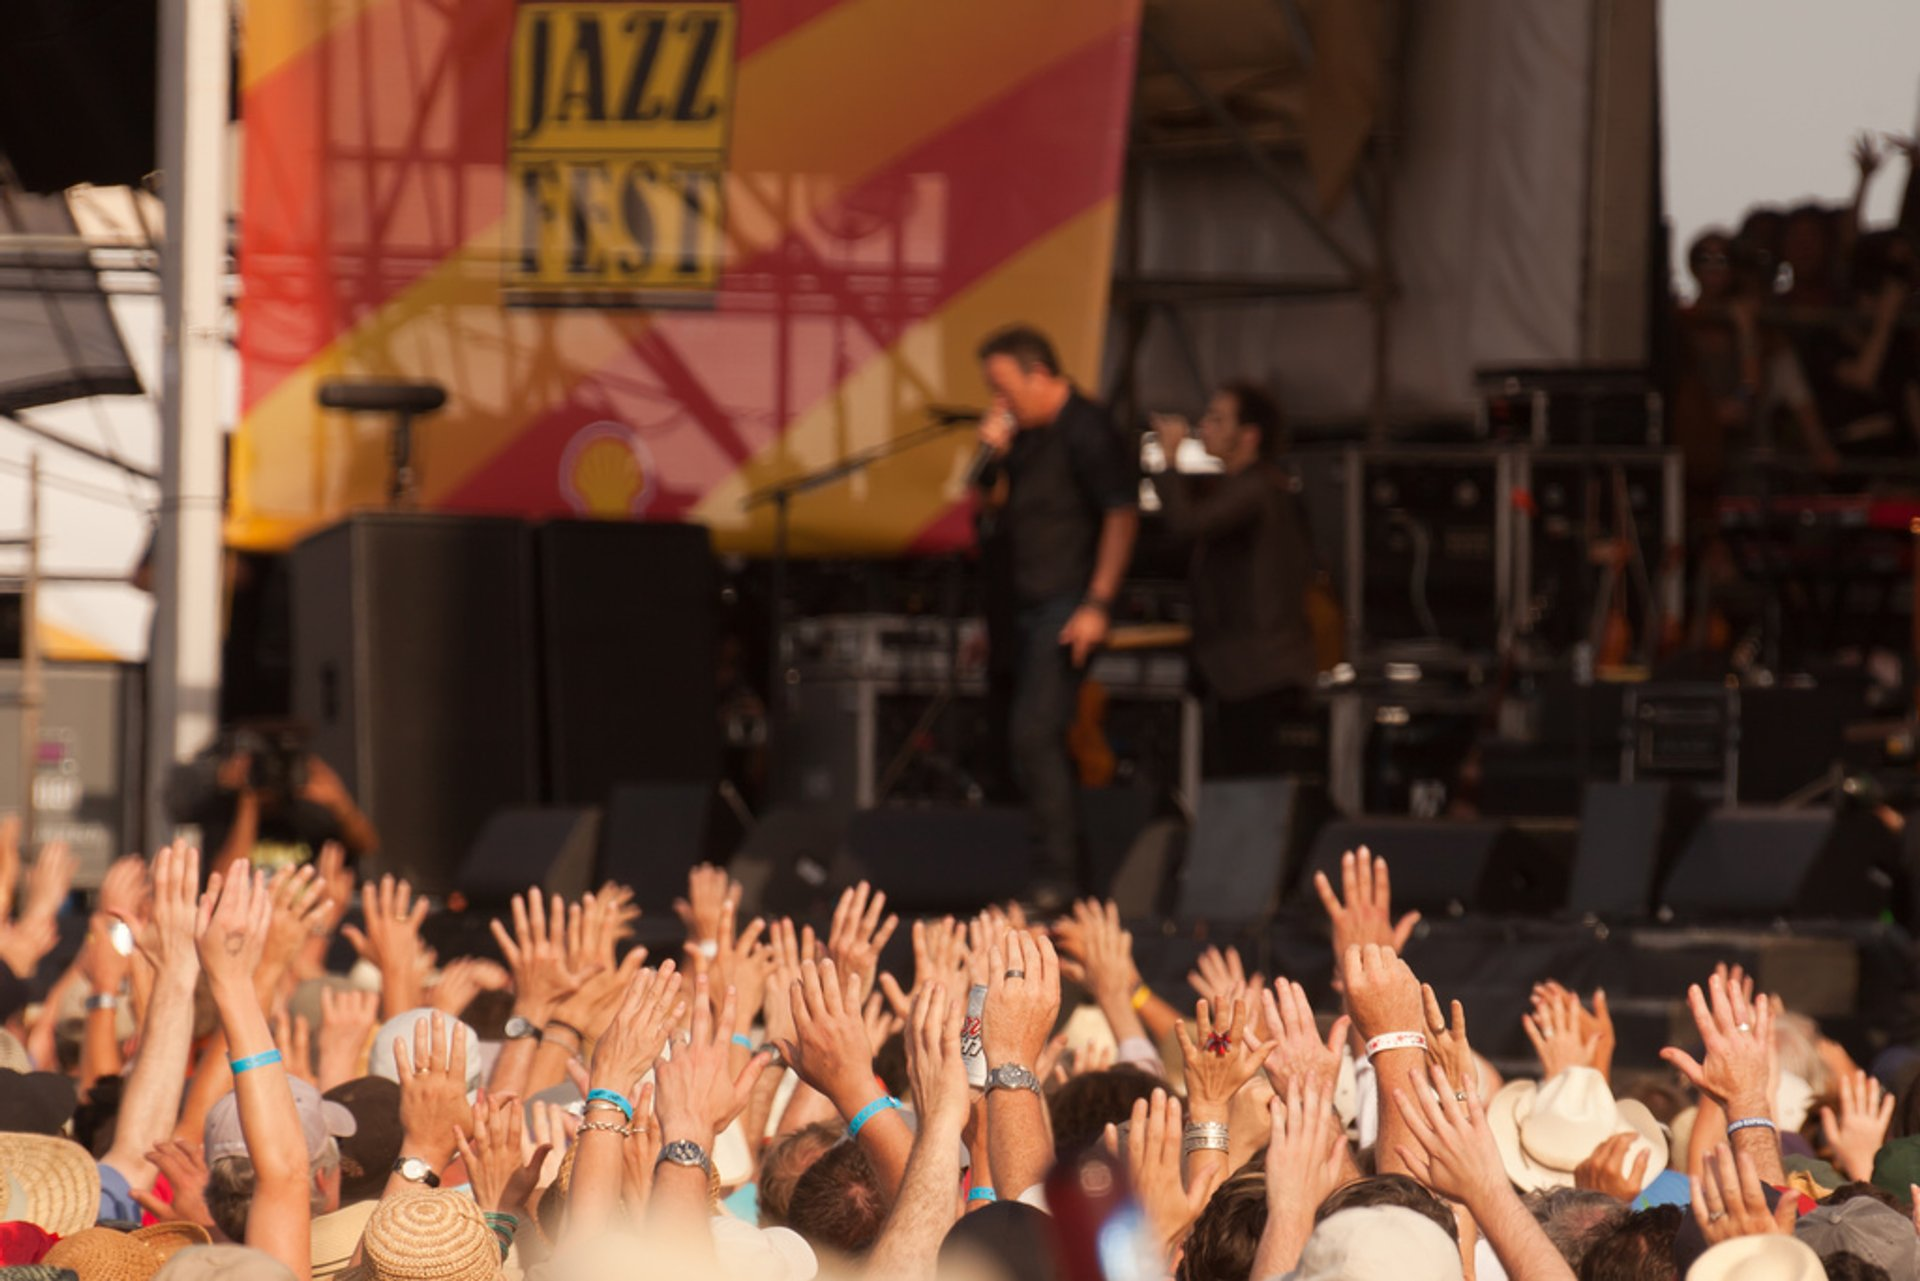 New Orleans Jazz and Heritage Festival in New Orleans 2019 - Best Time